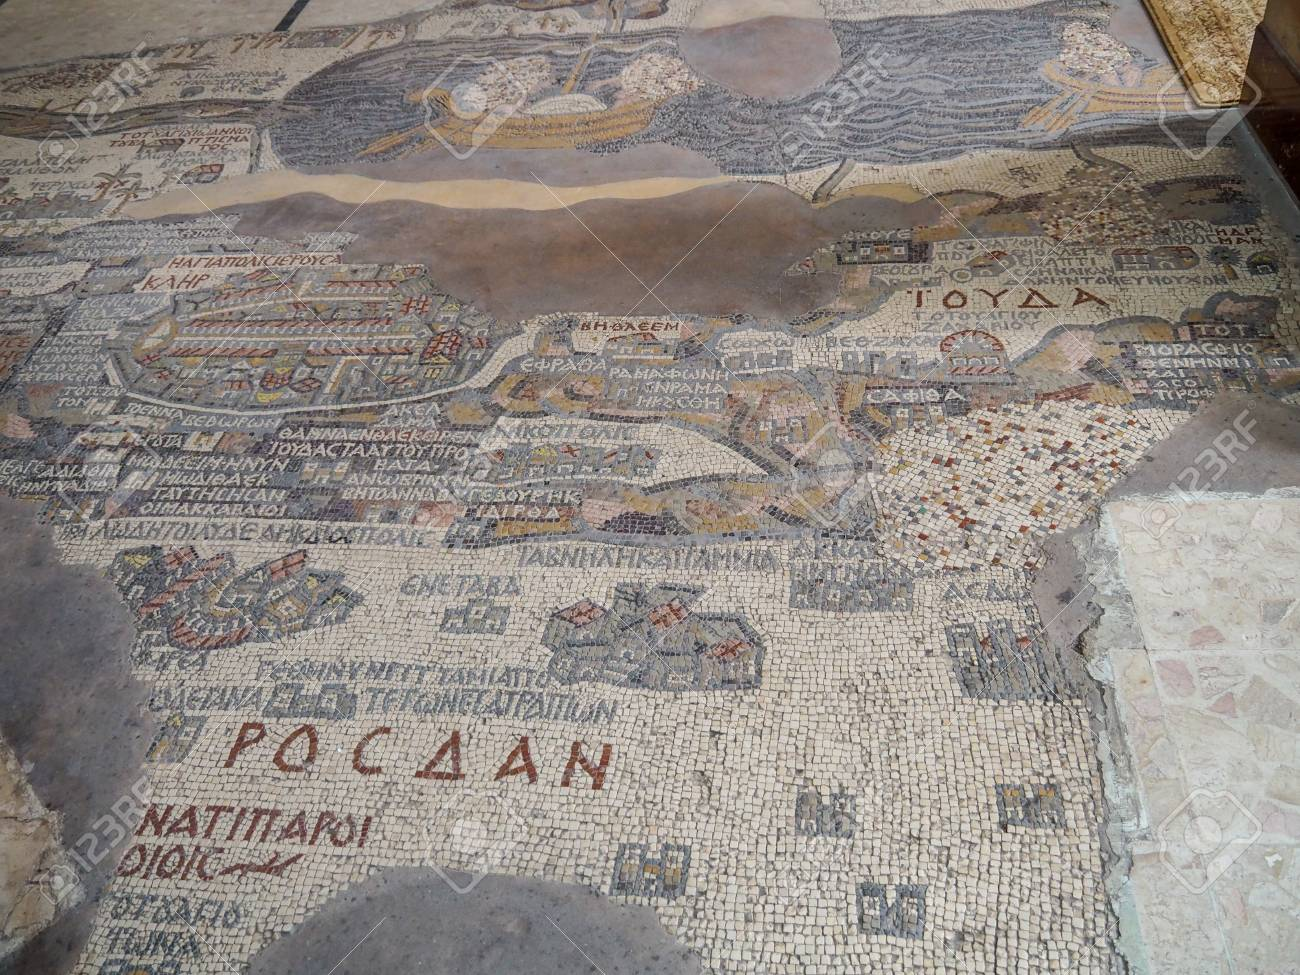 Madaba, Jordan - March 6th, 2018: Madaba Map is part of floor.. on vienna genesis, macedonian renaissance, late antique and medieval mosaics in italy, joshua roll,